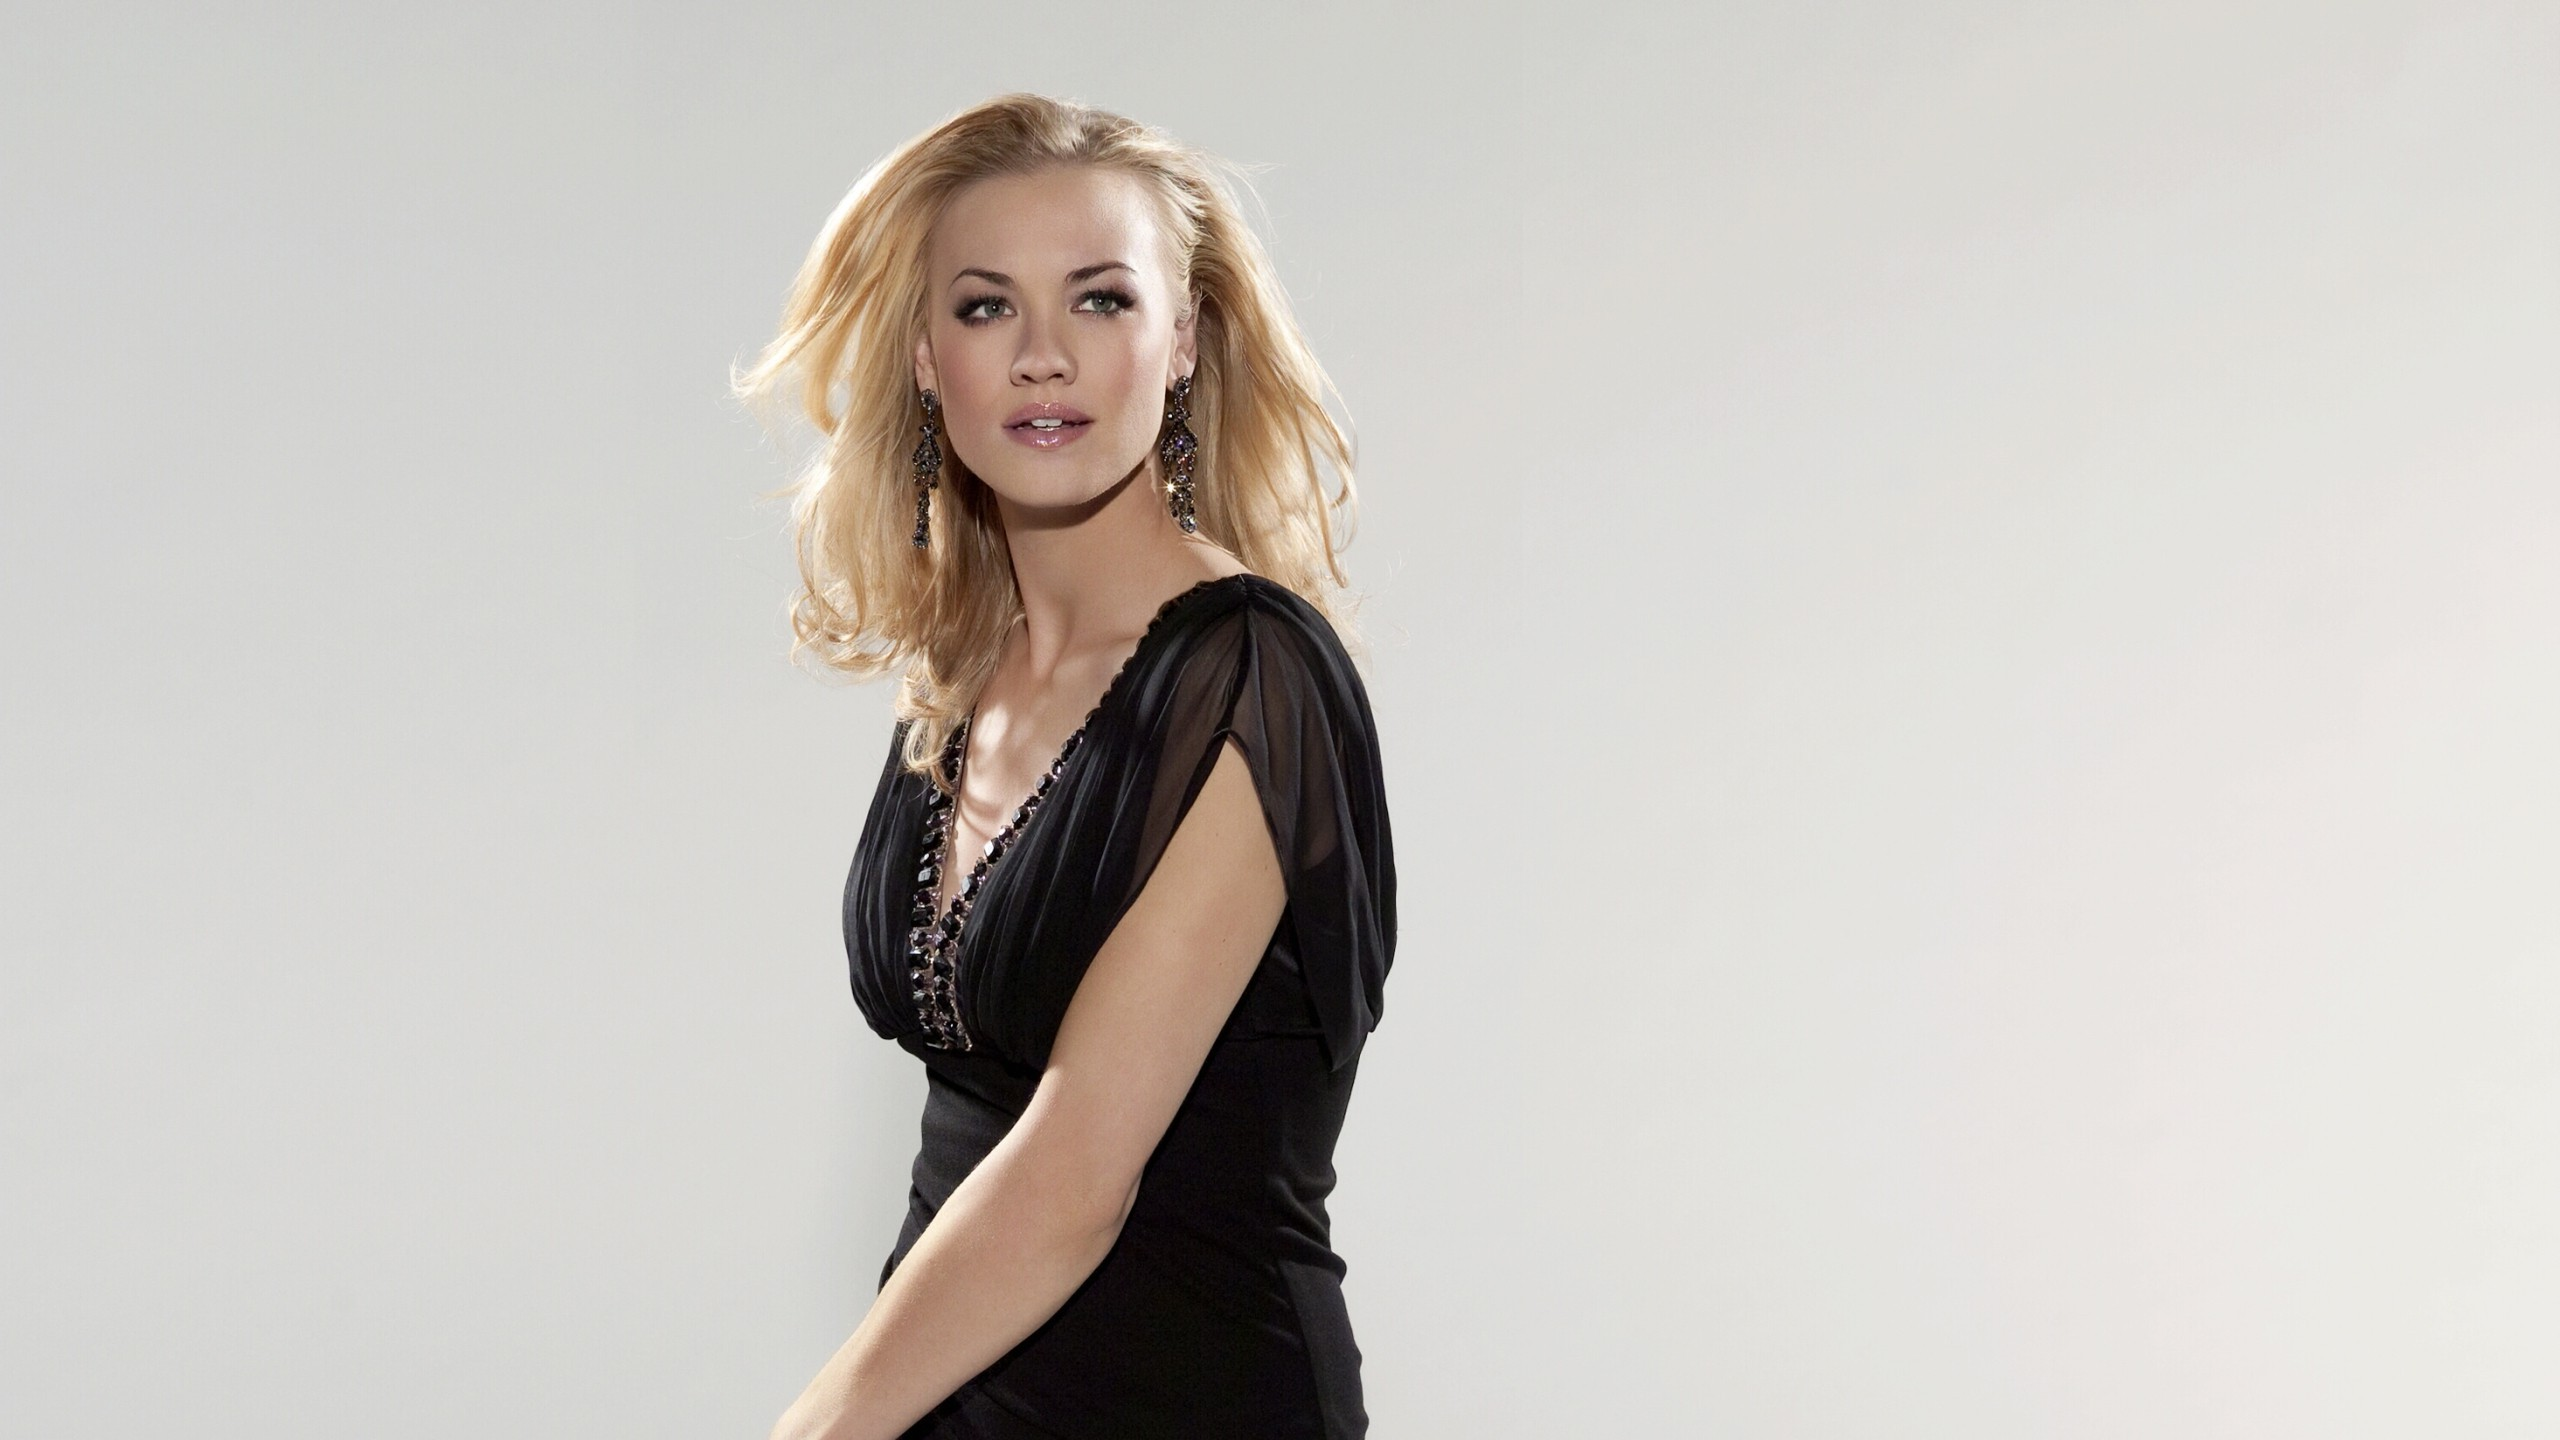 Yvonne Strahovski HD Wallpapers 2560x1440